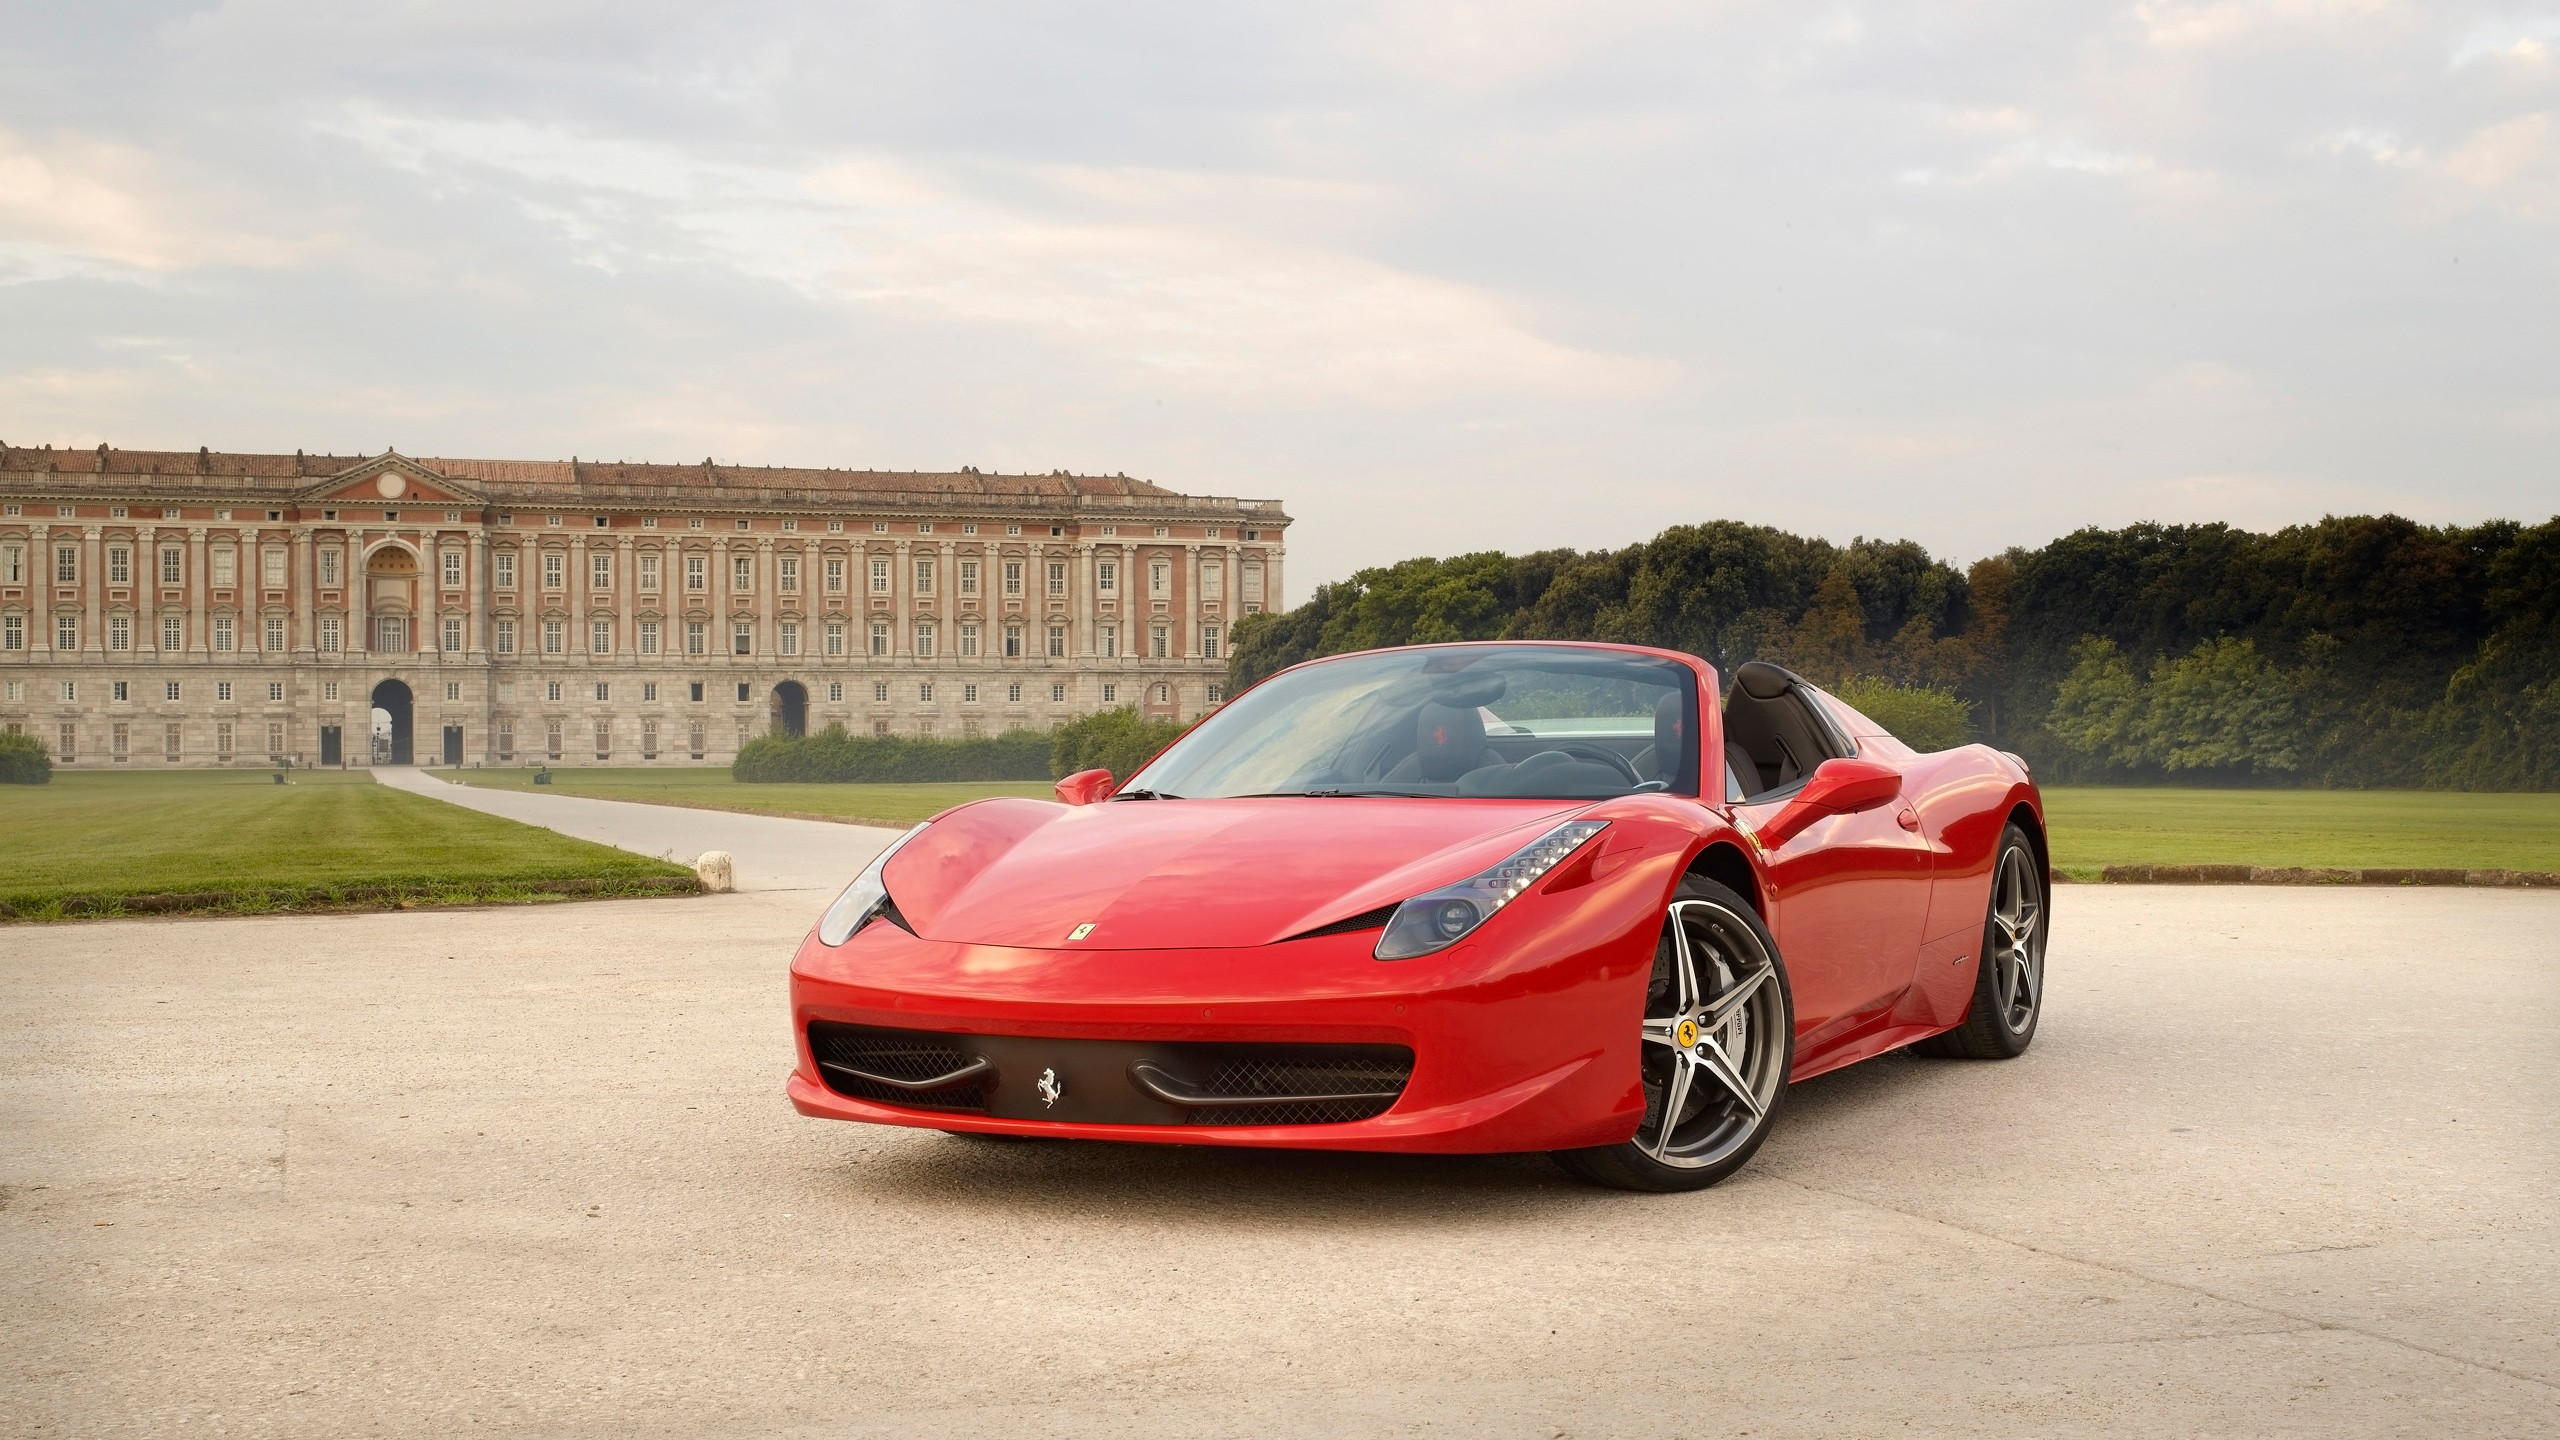 2014 Ferrari 458 Spider >> 2014 Ferrari 458 Spider Wallpaper | HD Car Wallpapers | ID ...